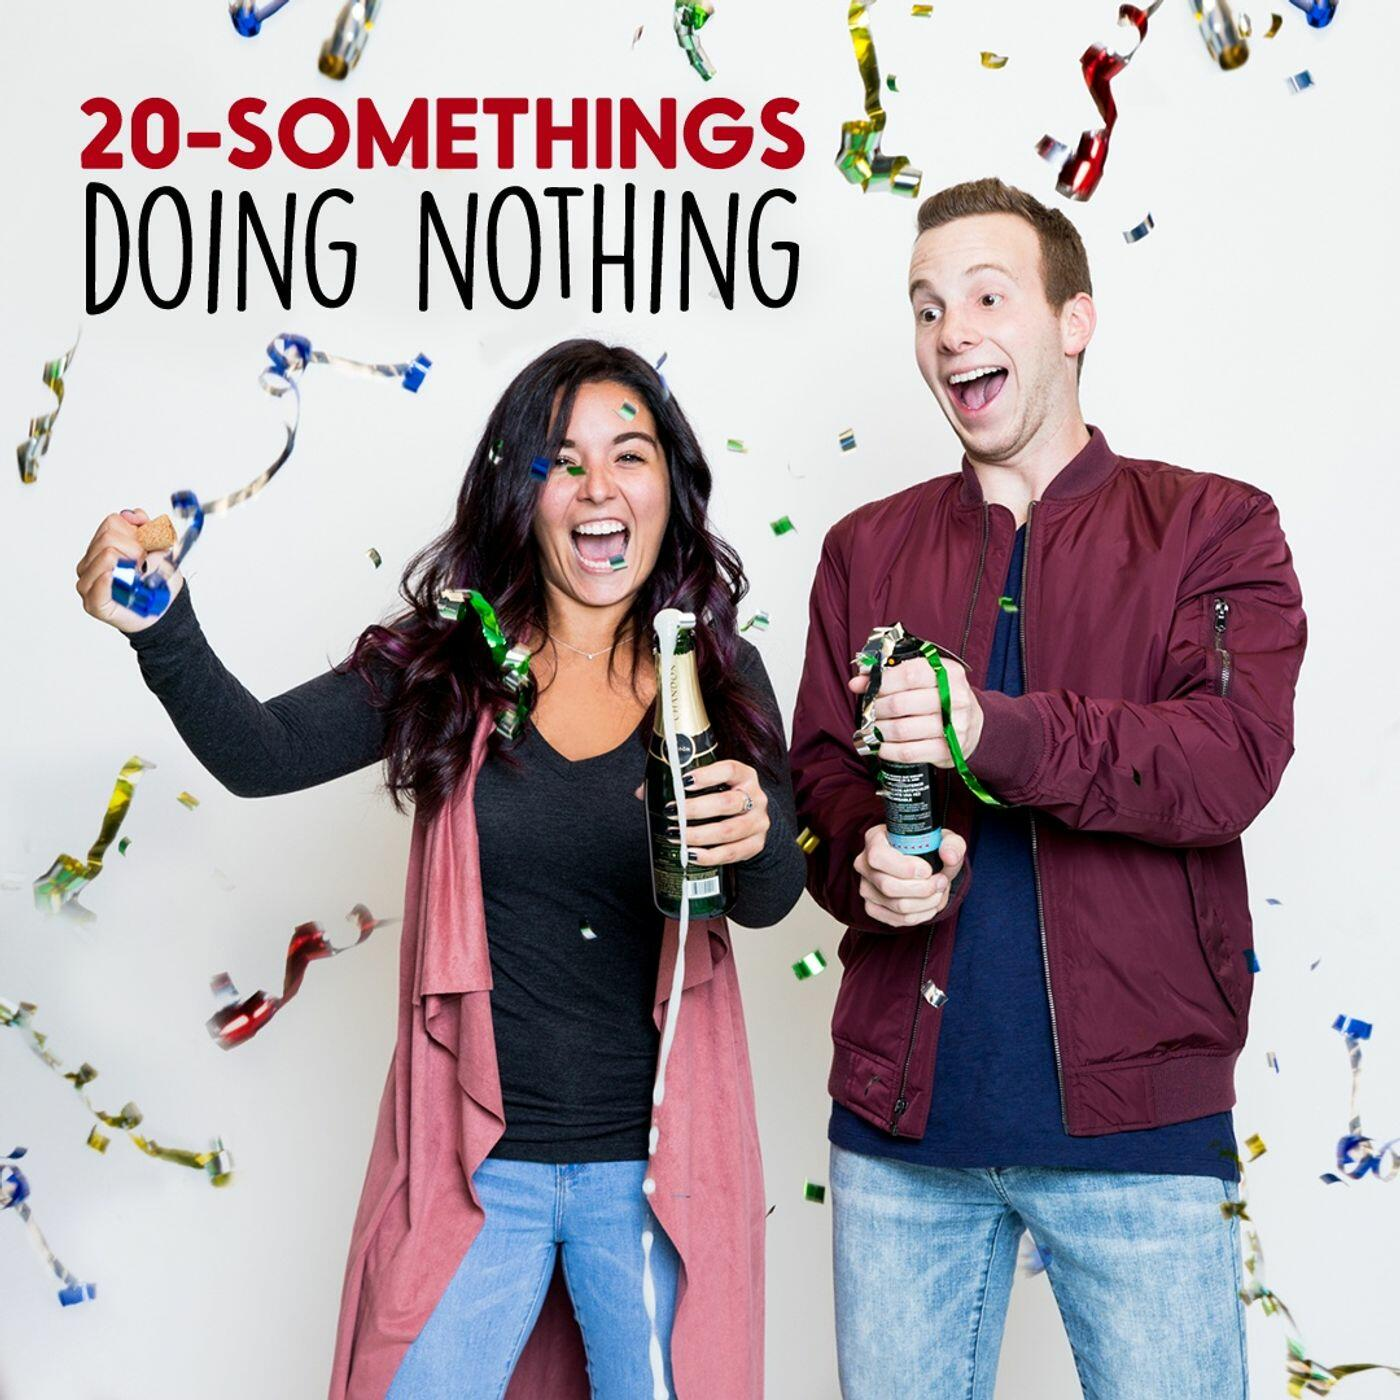 Listen to Traveling with Co-Workers, International Tinder & Living Forever | 20-Somethings Doing Nothing | Podcasts